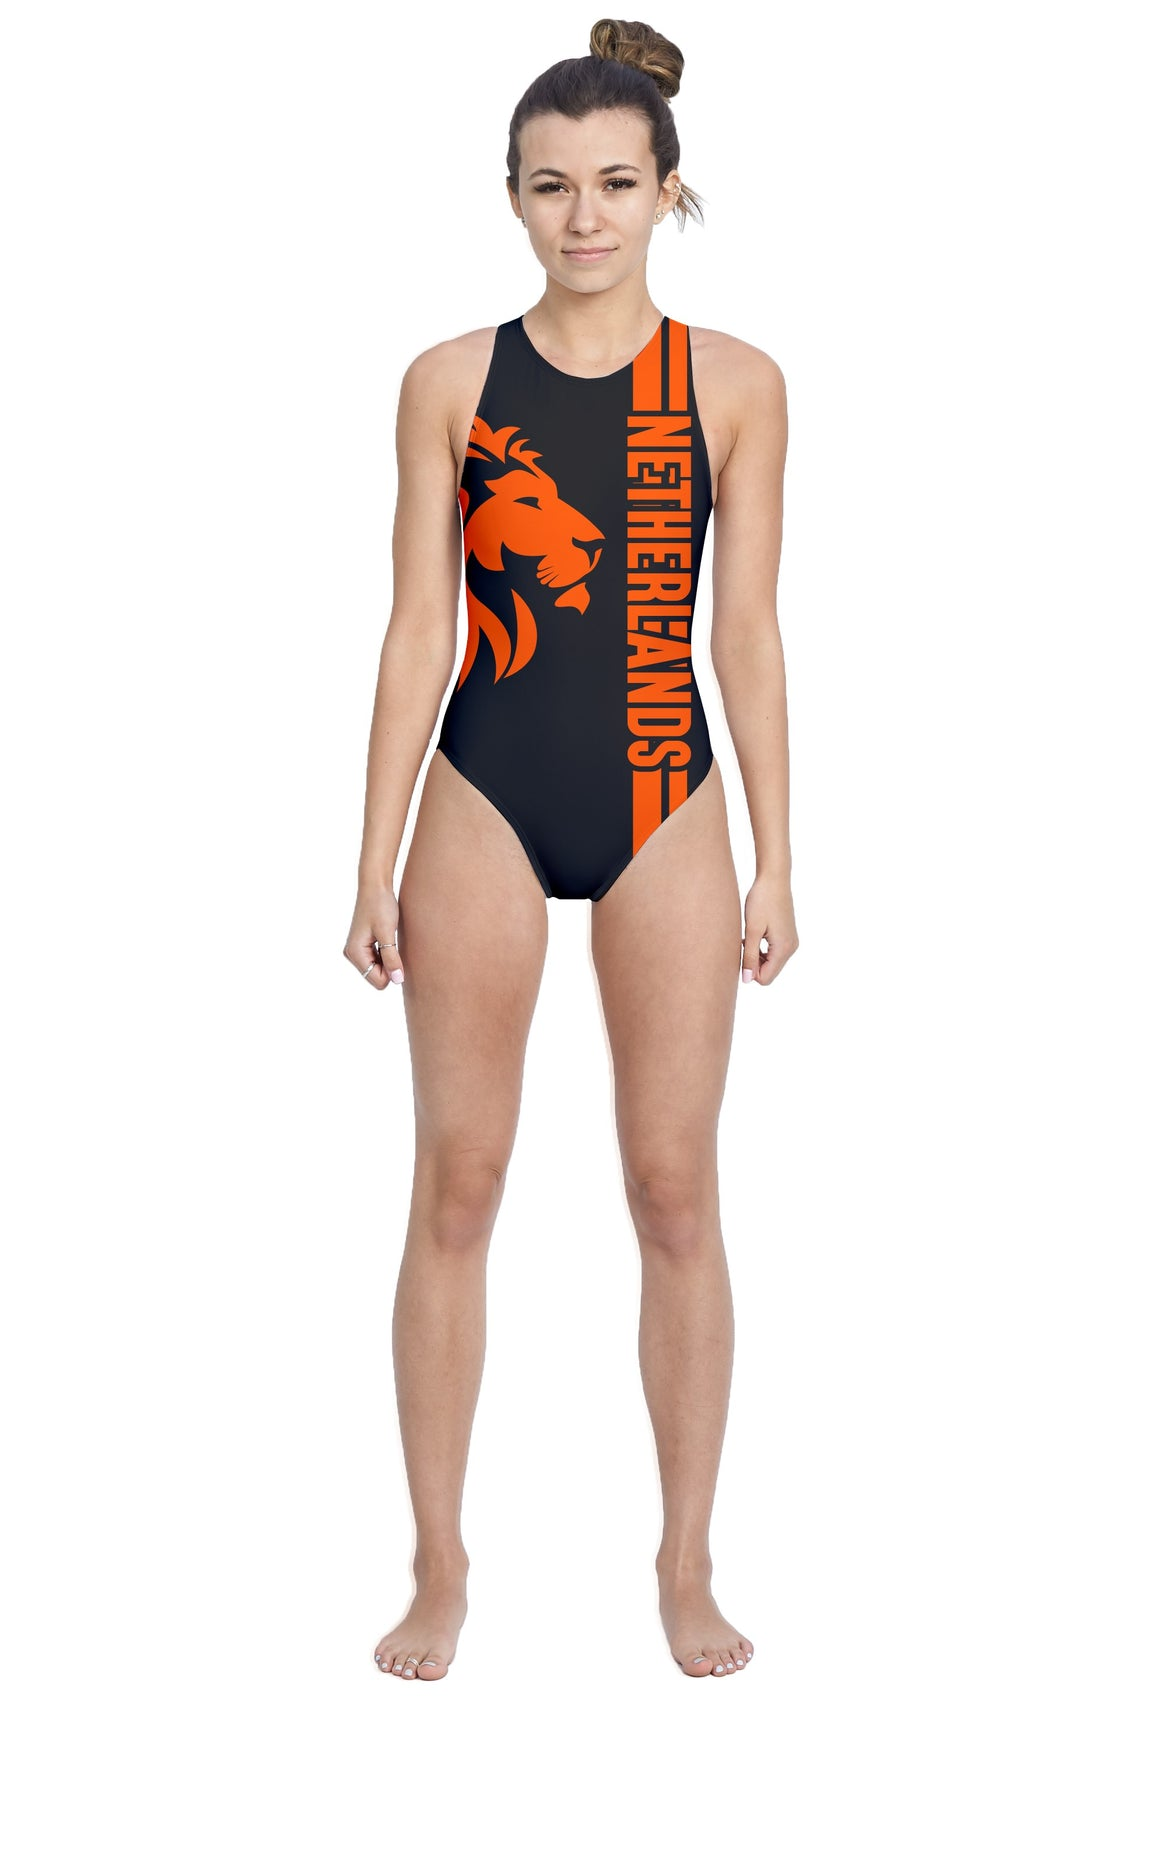 Netherlands Women's Water Polo Suit